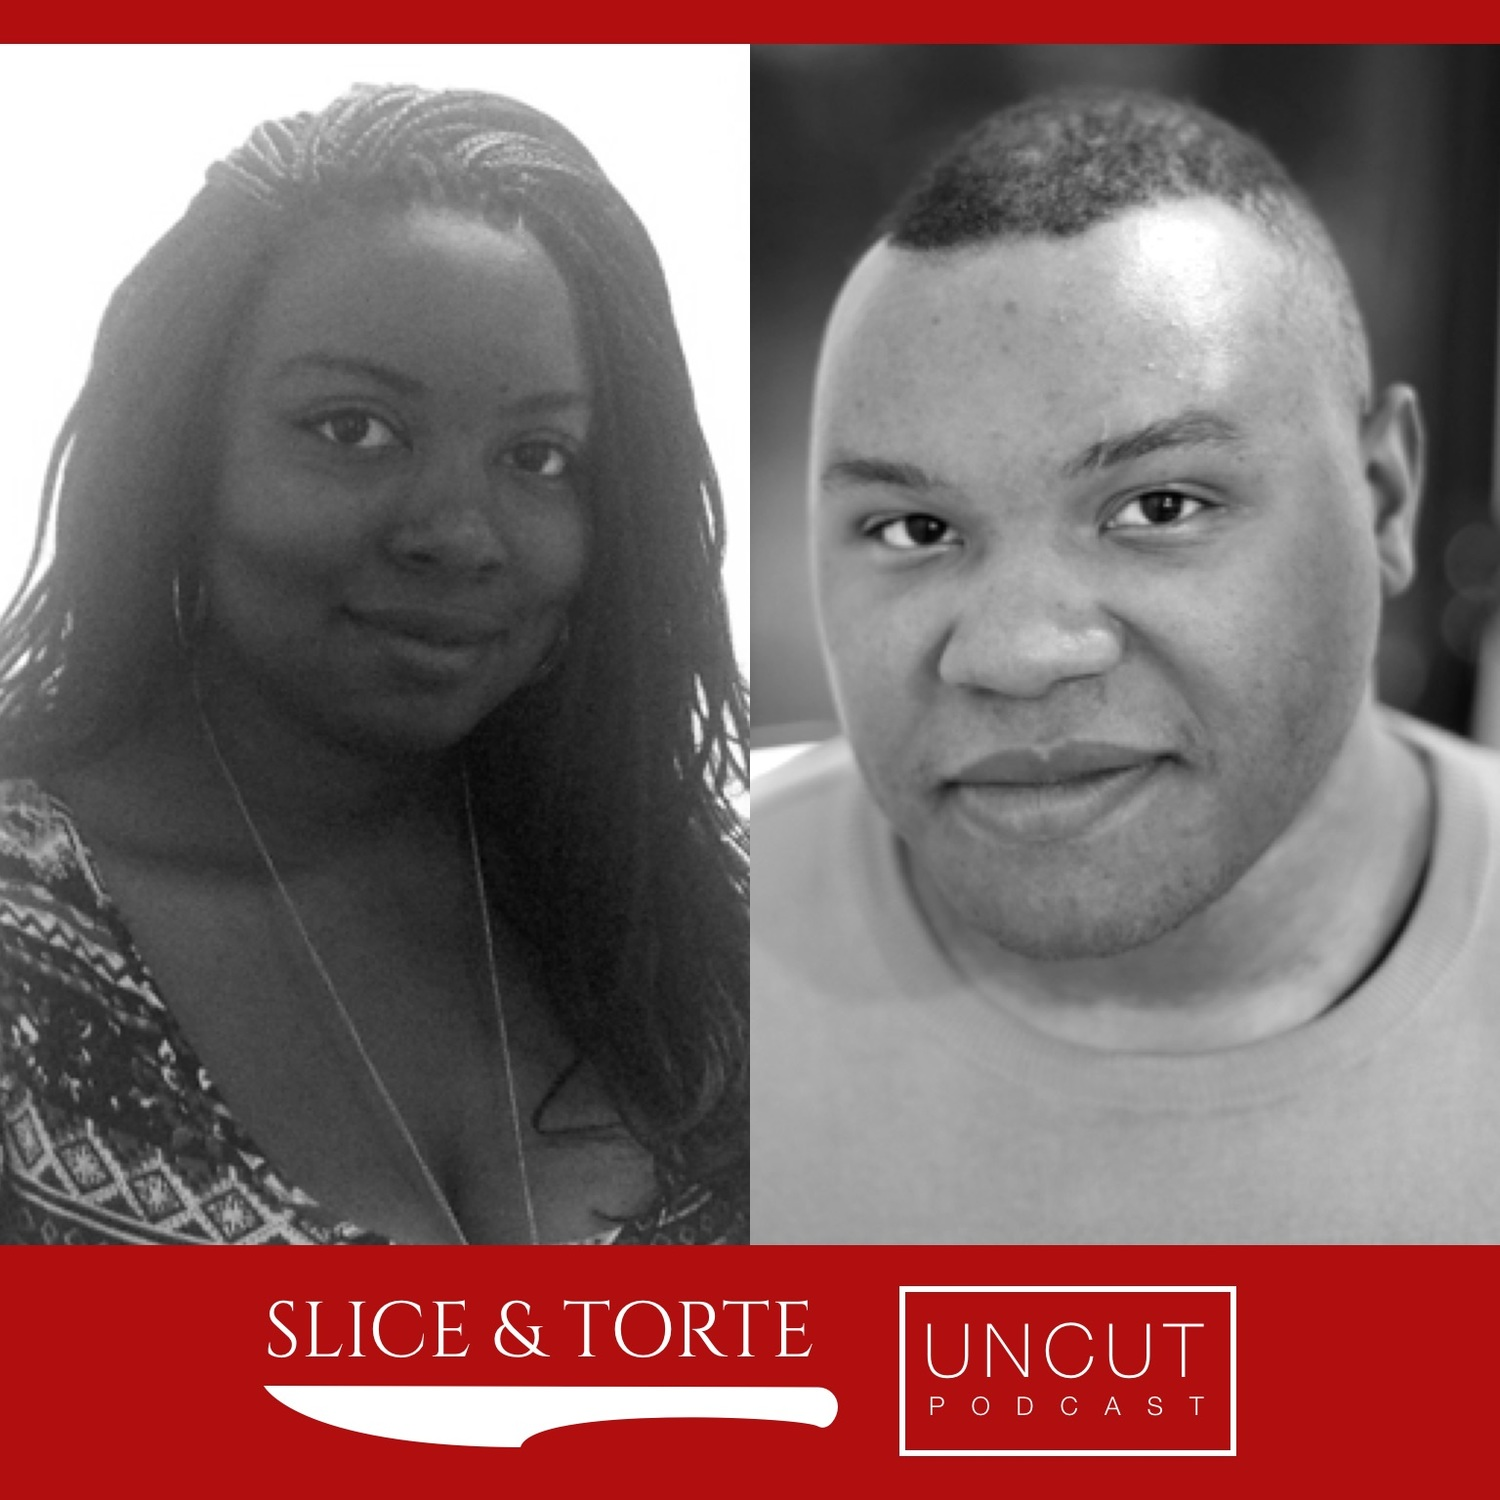 Uncut Podcast - Slice & Torte